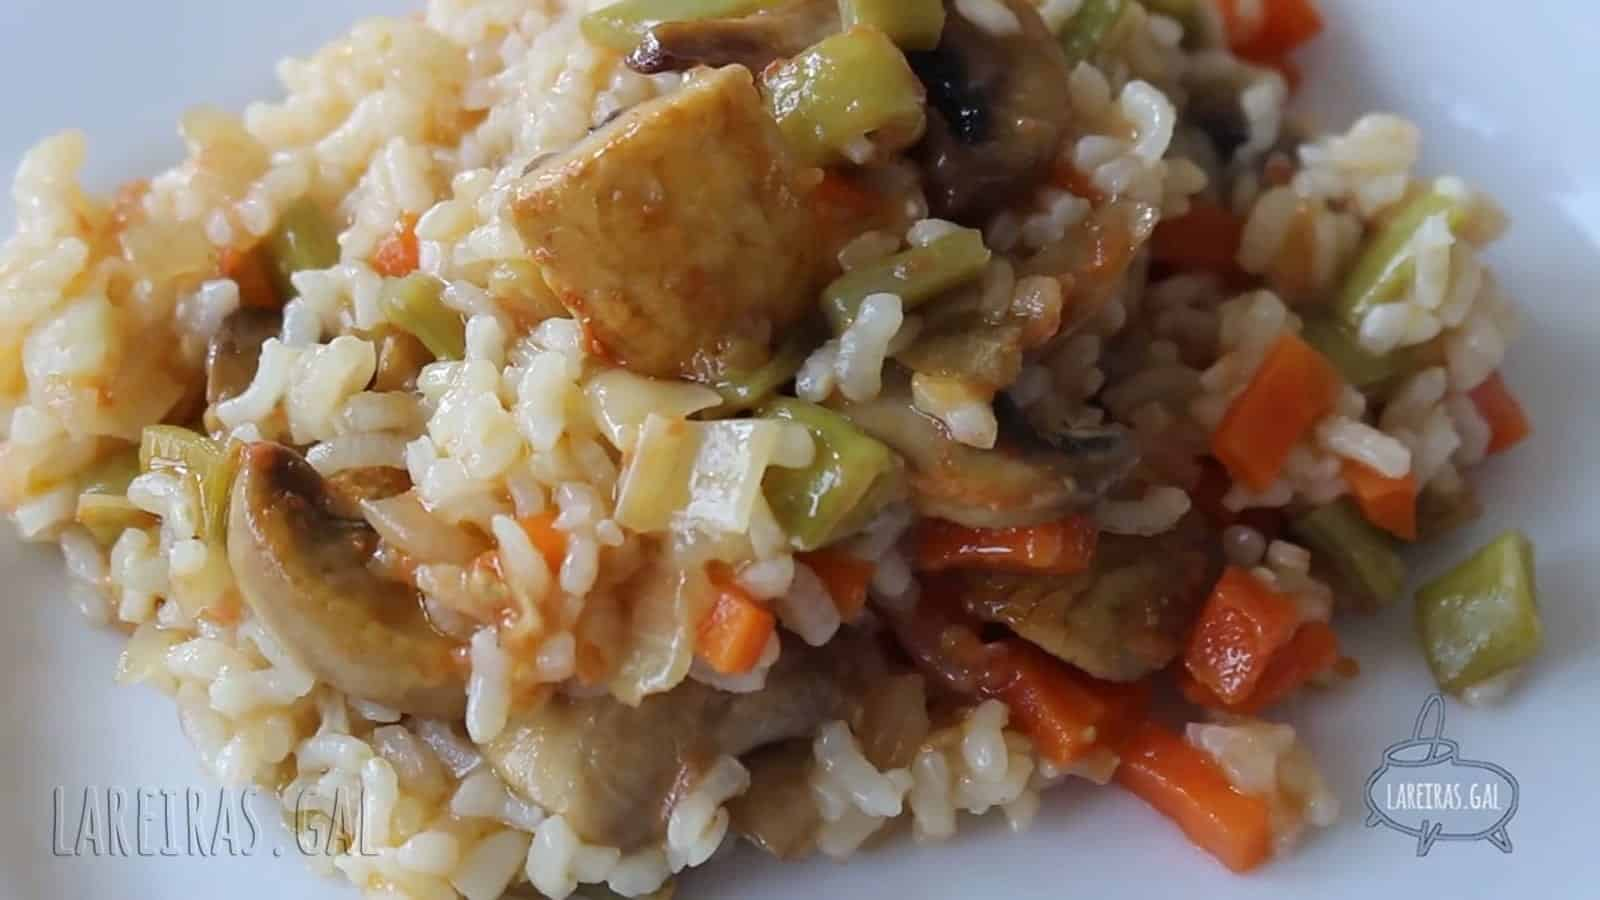 Curried rice with vegetables